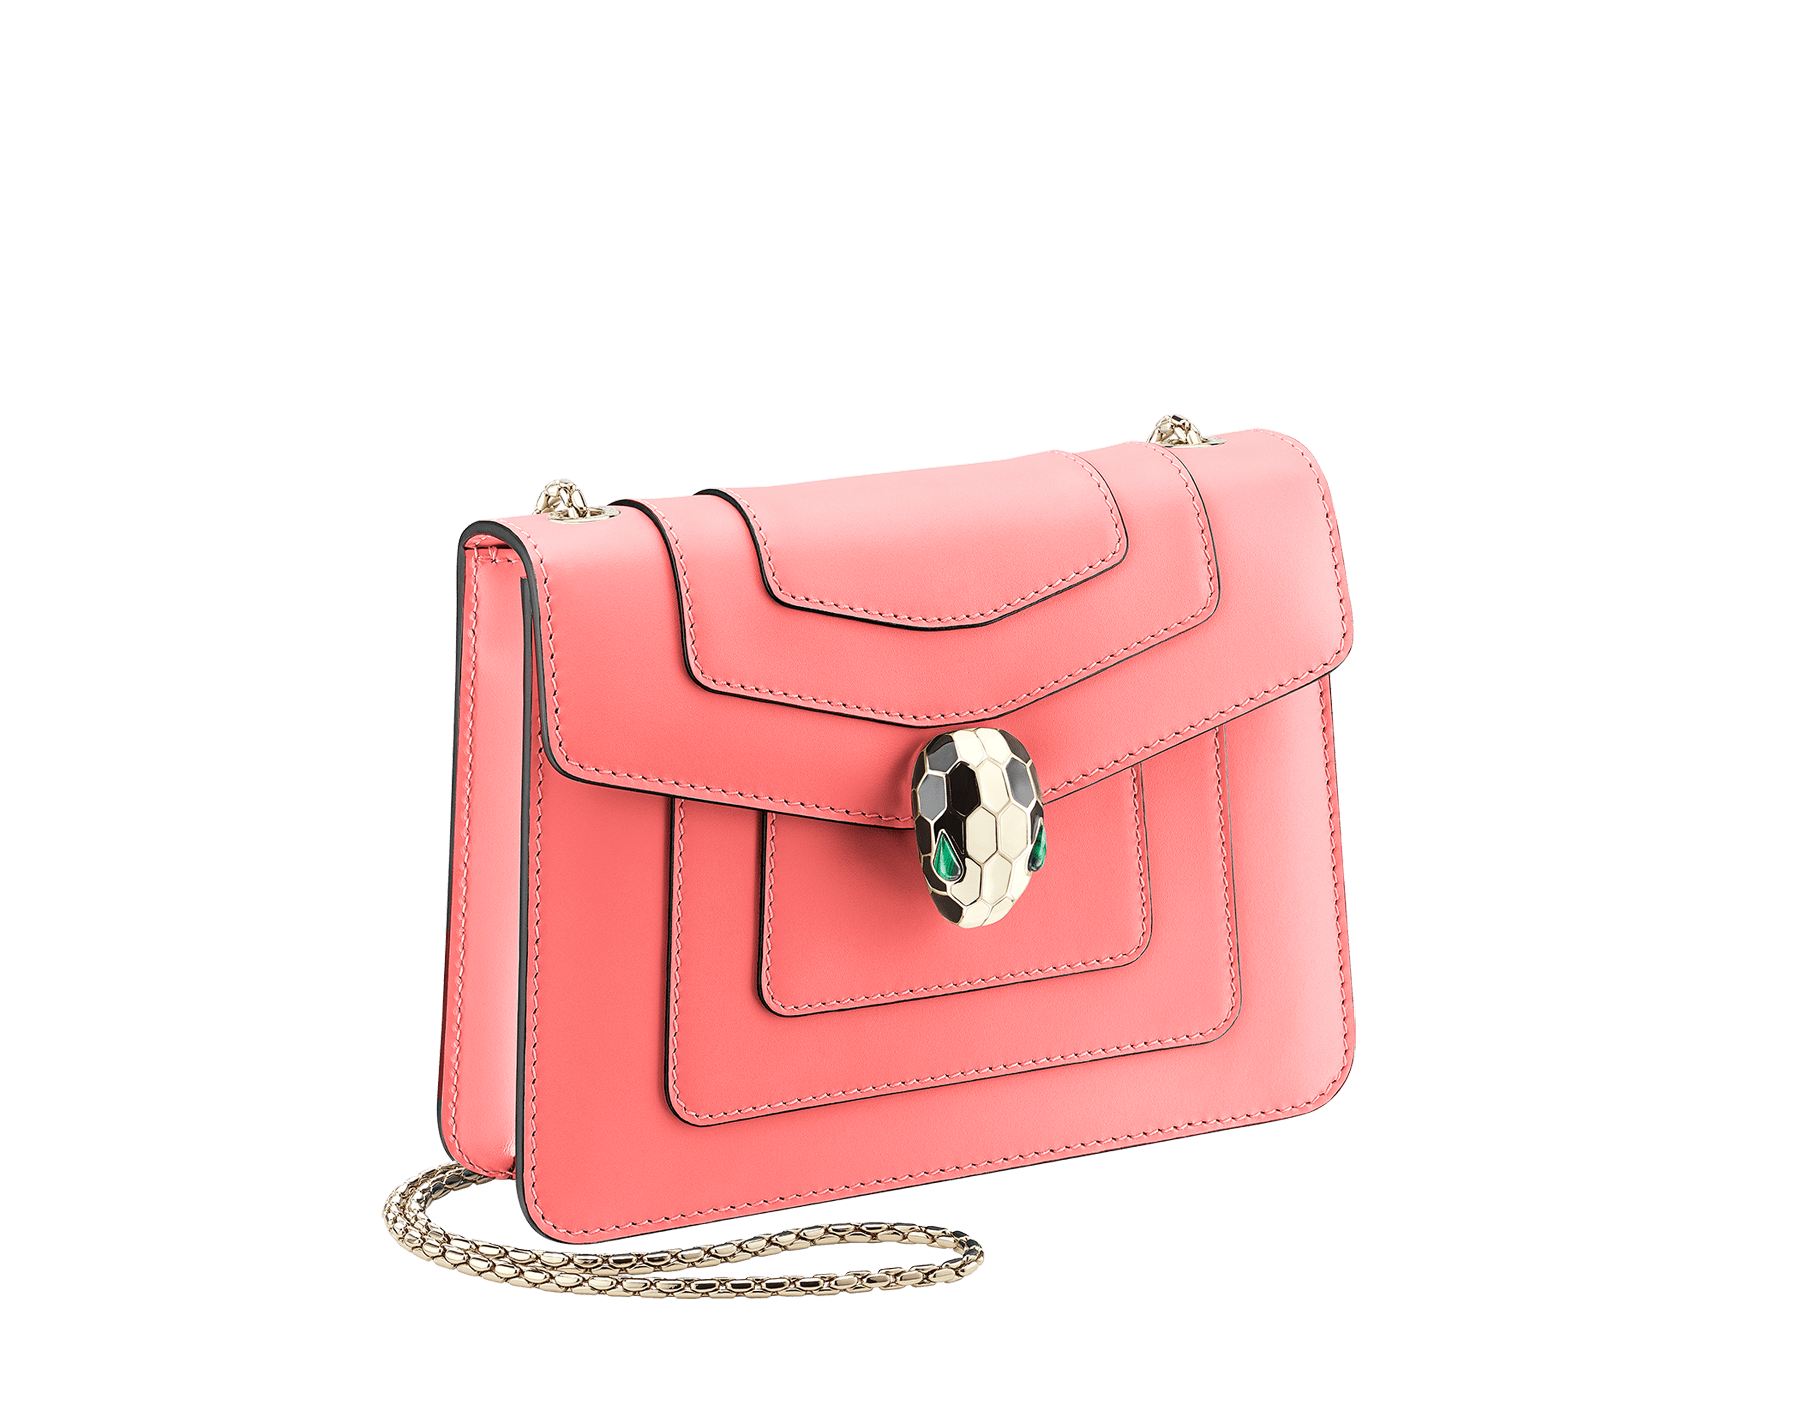 """Serpenti Forever"" crossbody bag in silky coral calf leather. Iconic snakehead closure in light gold plated brass enriched with black and white enamel and green malachite eyes. 288700 image 2"